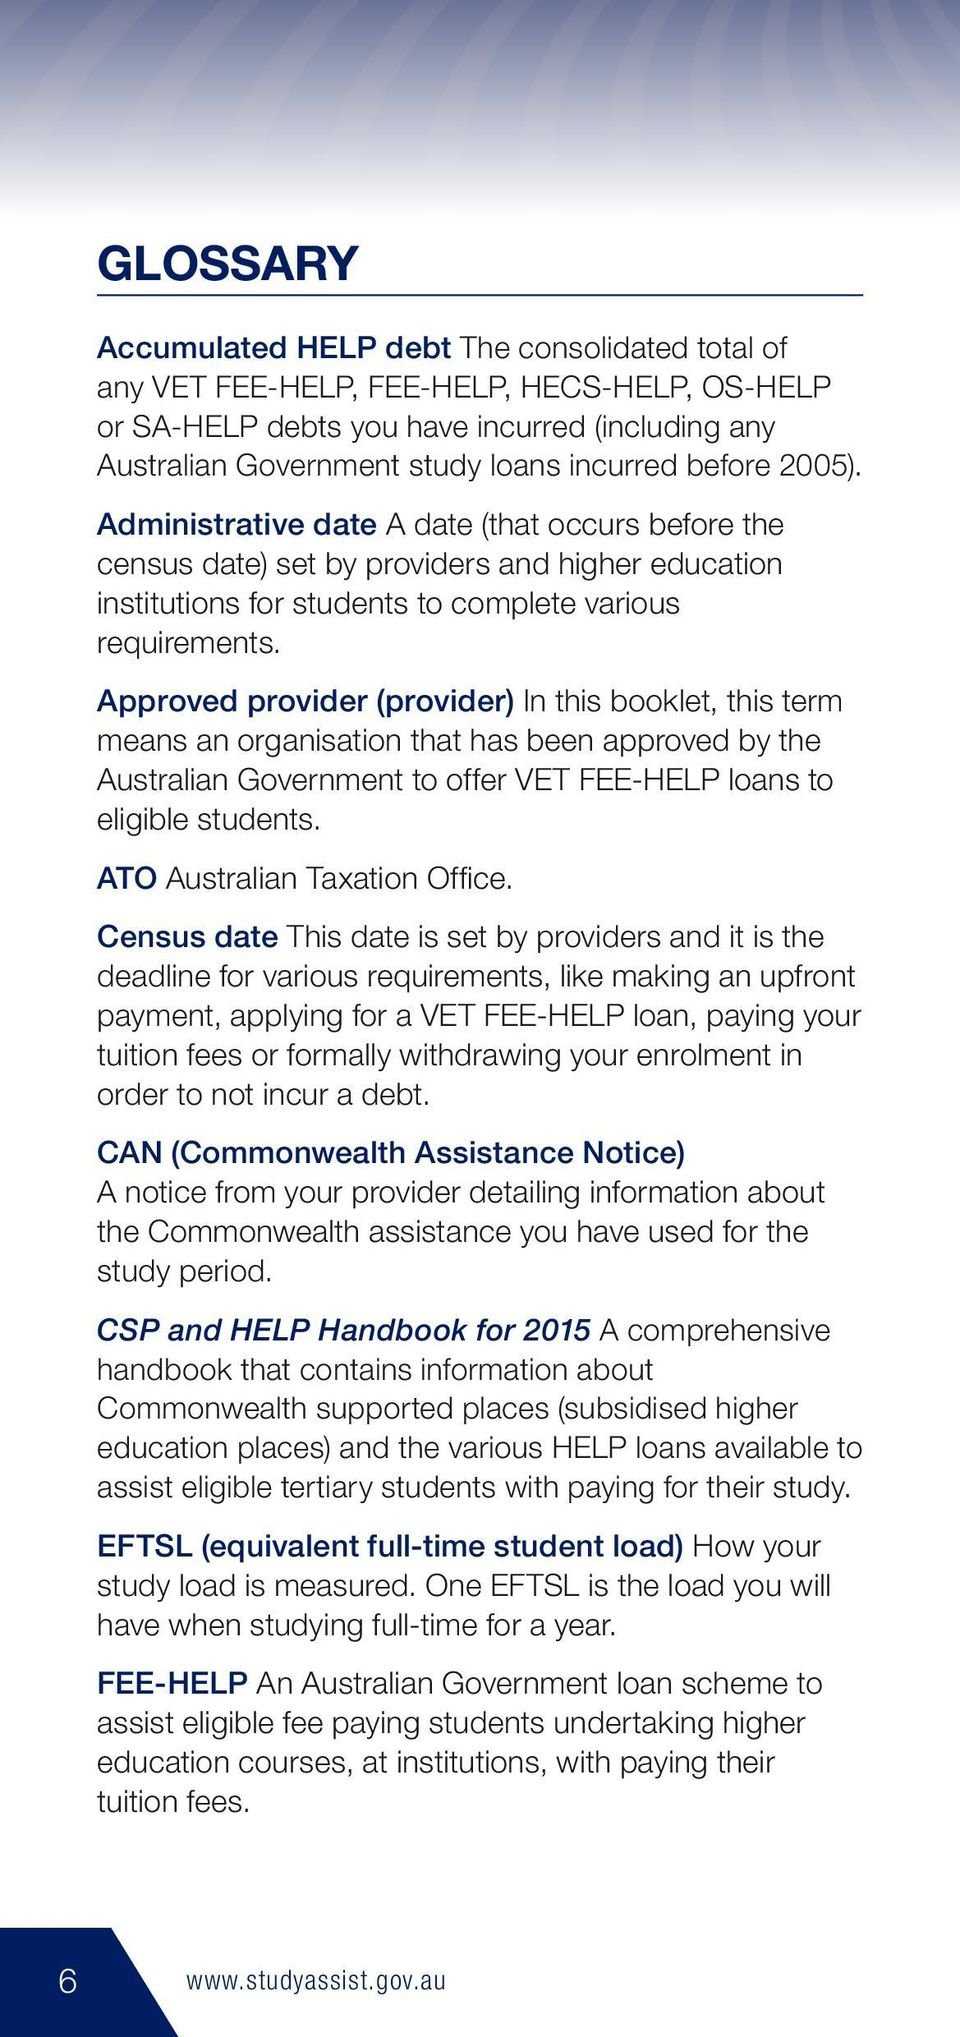 Approved provider (provider) In this booklet, this term means an organisation that has been approved by the Australian Government to offer VET FEE-HELP loans to eligible students.